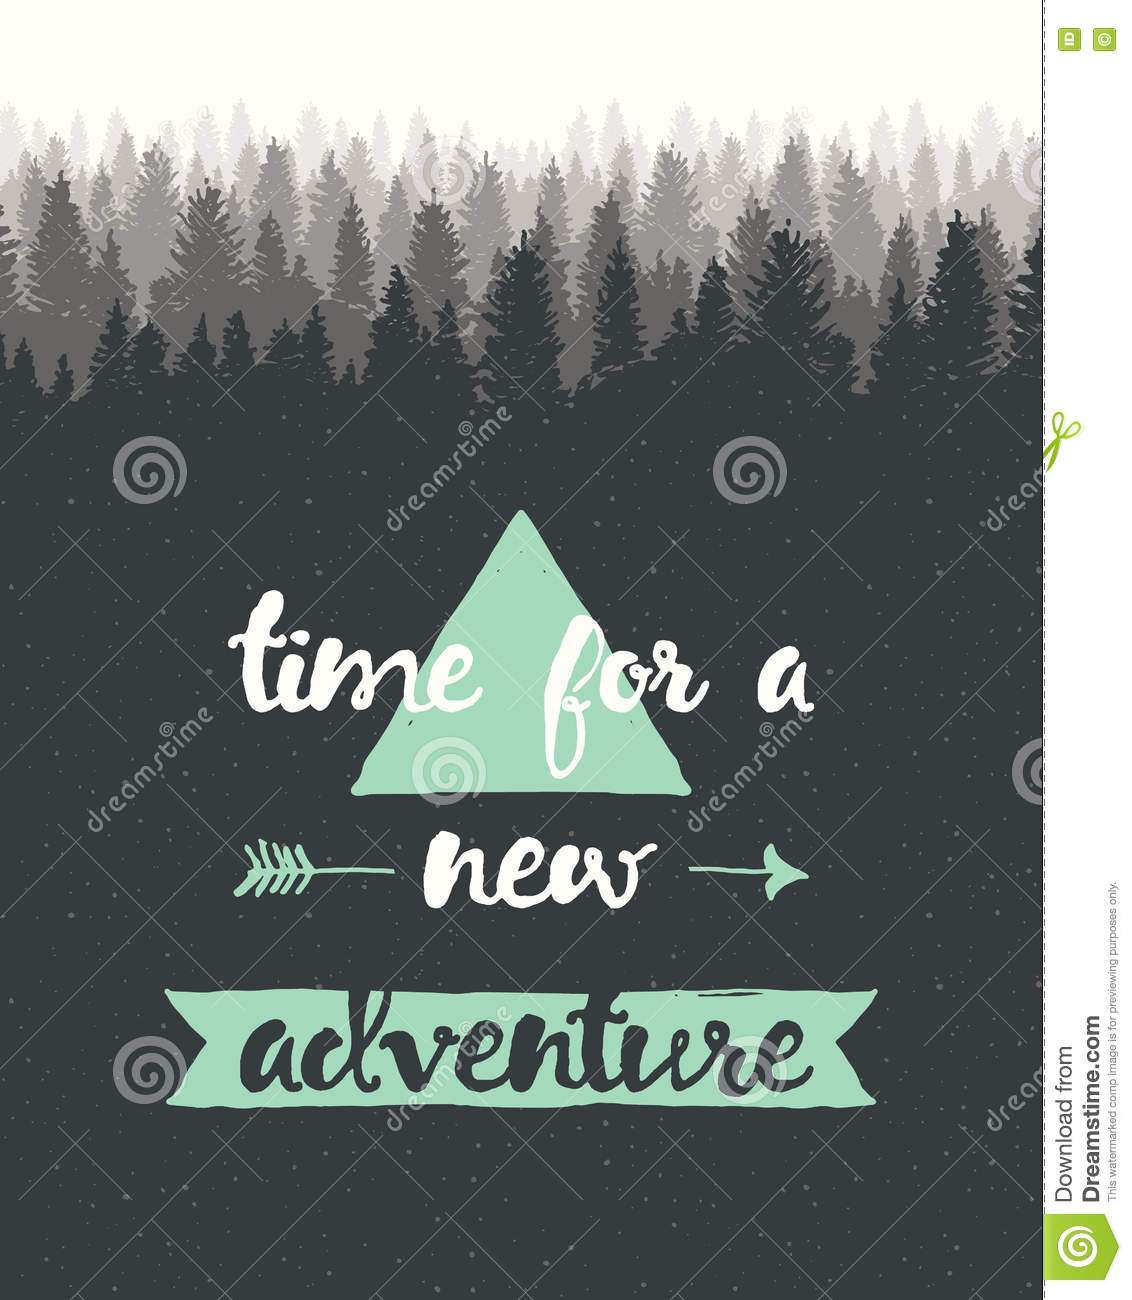 Dow Quotes Real Time: Drawn Calligraphic Quote Time Adventure Poster Stock Photo